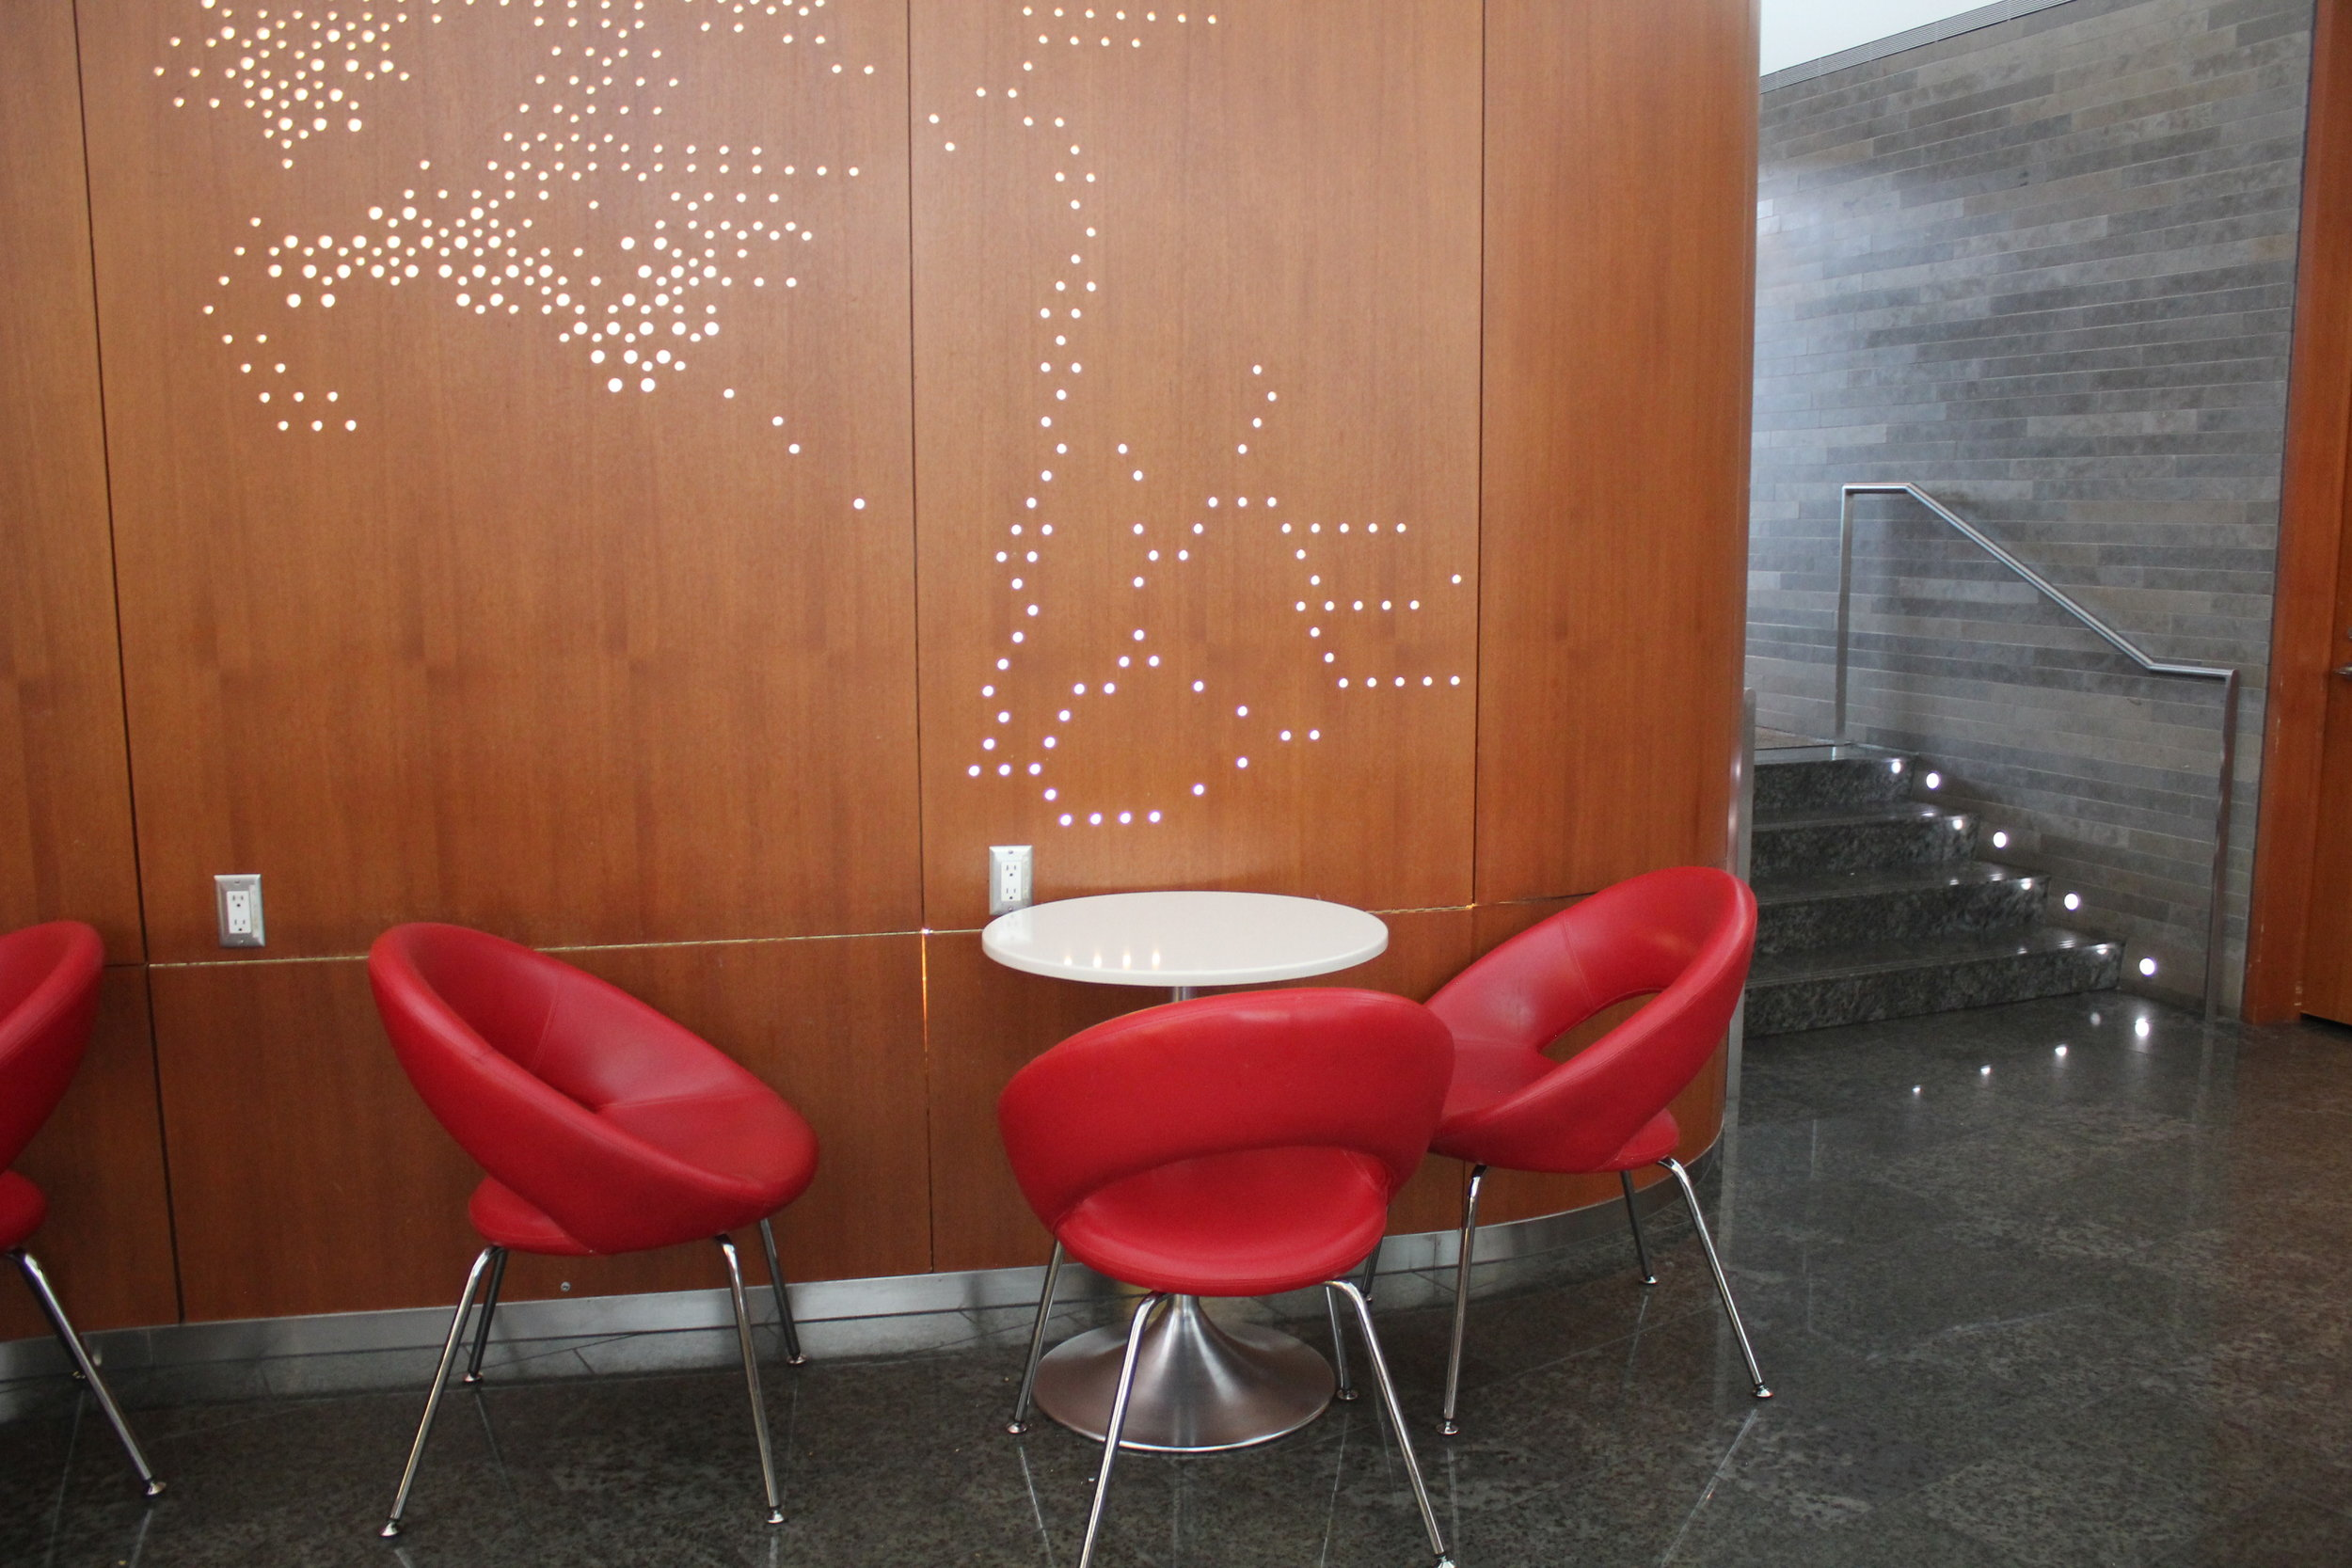 Air Canada Maple Leaf Lounge Toronto (International) – Dining table and seats